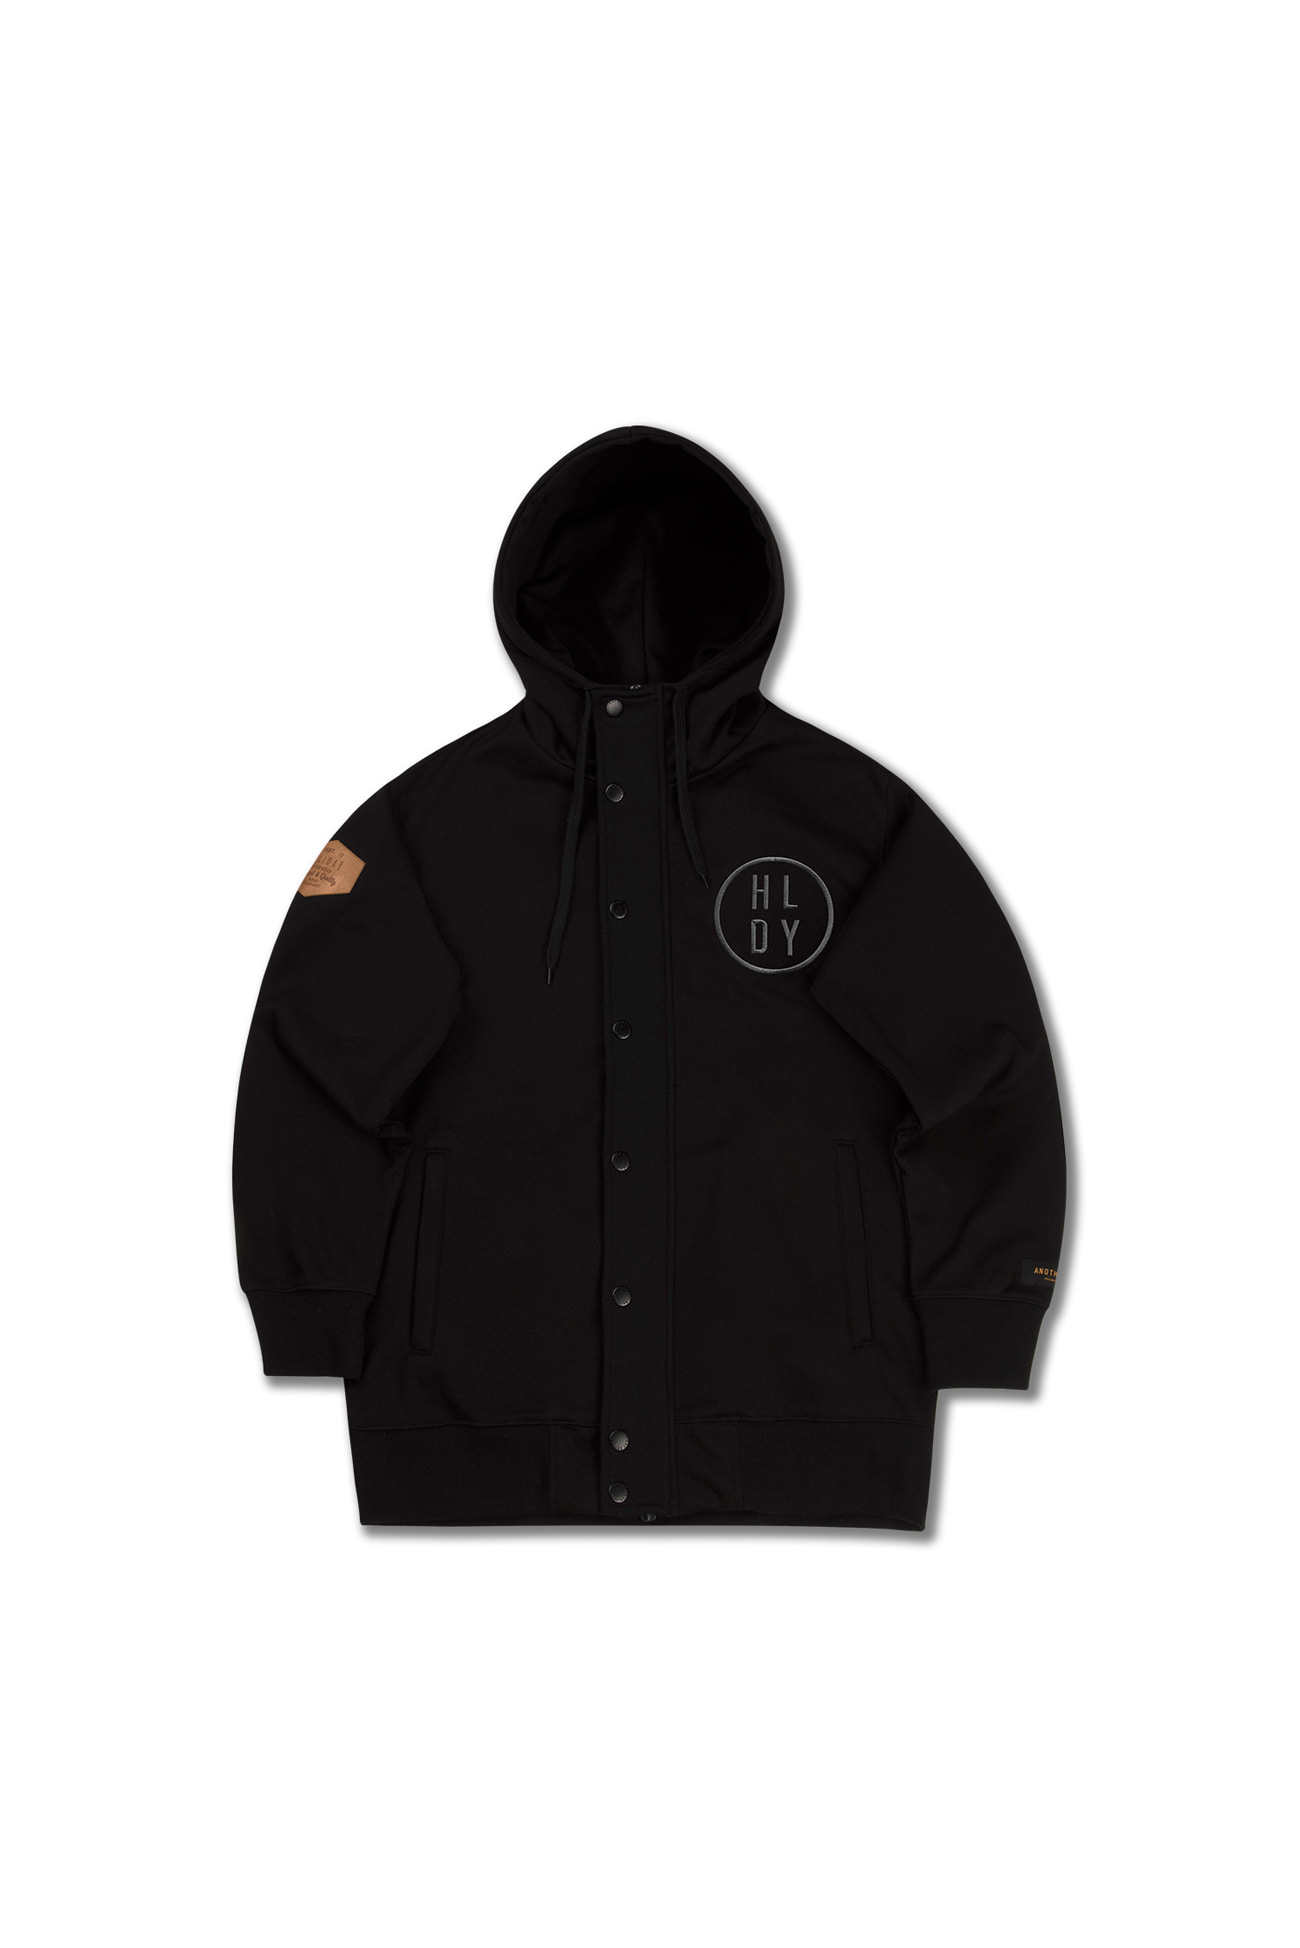 PLAYER waterproof zipup[방수후드] - blackHOLIDAY OUTERWEAR